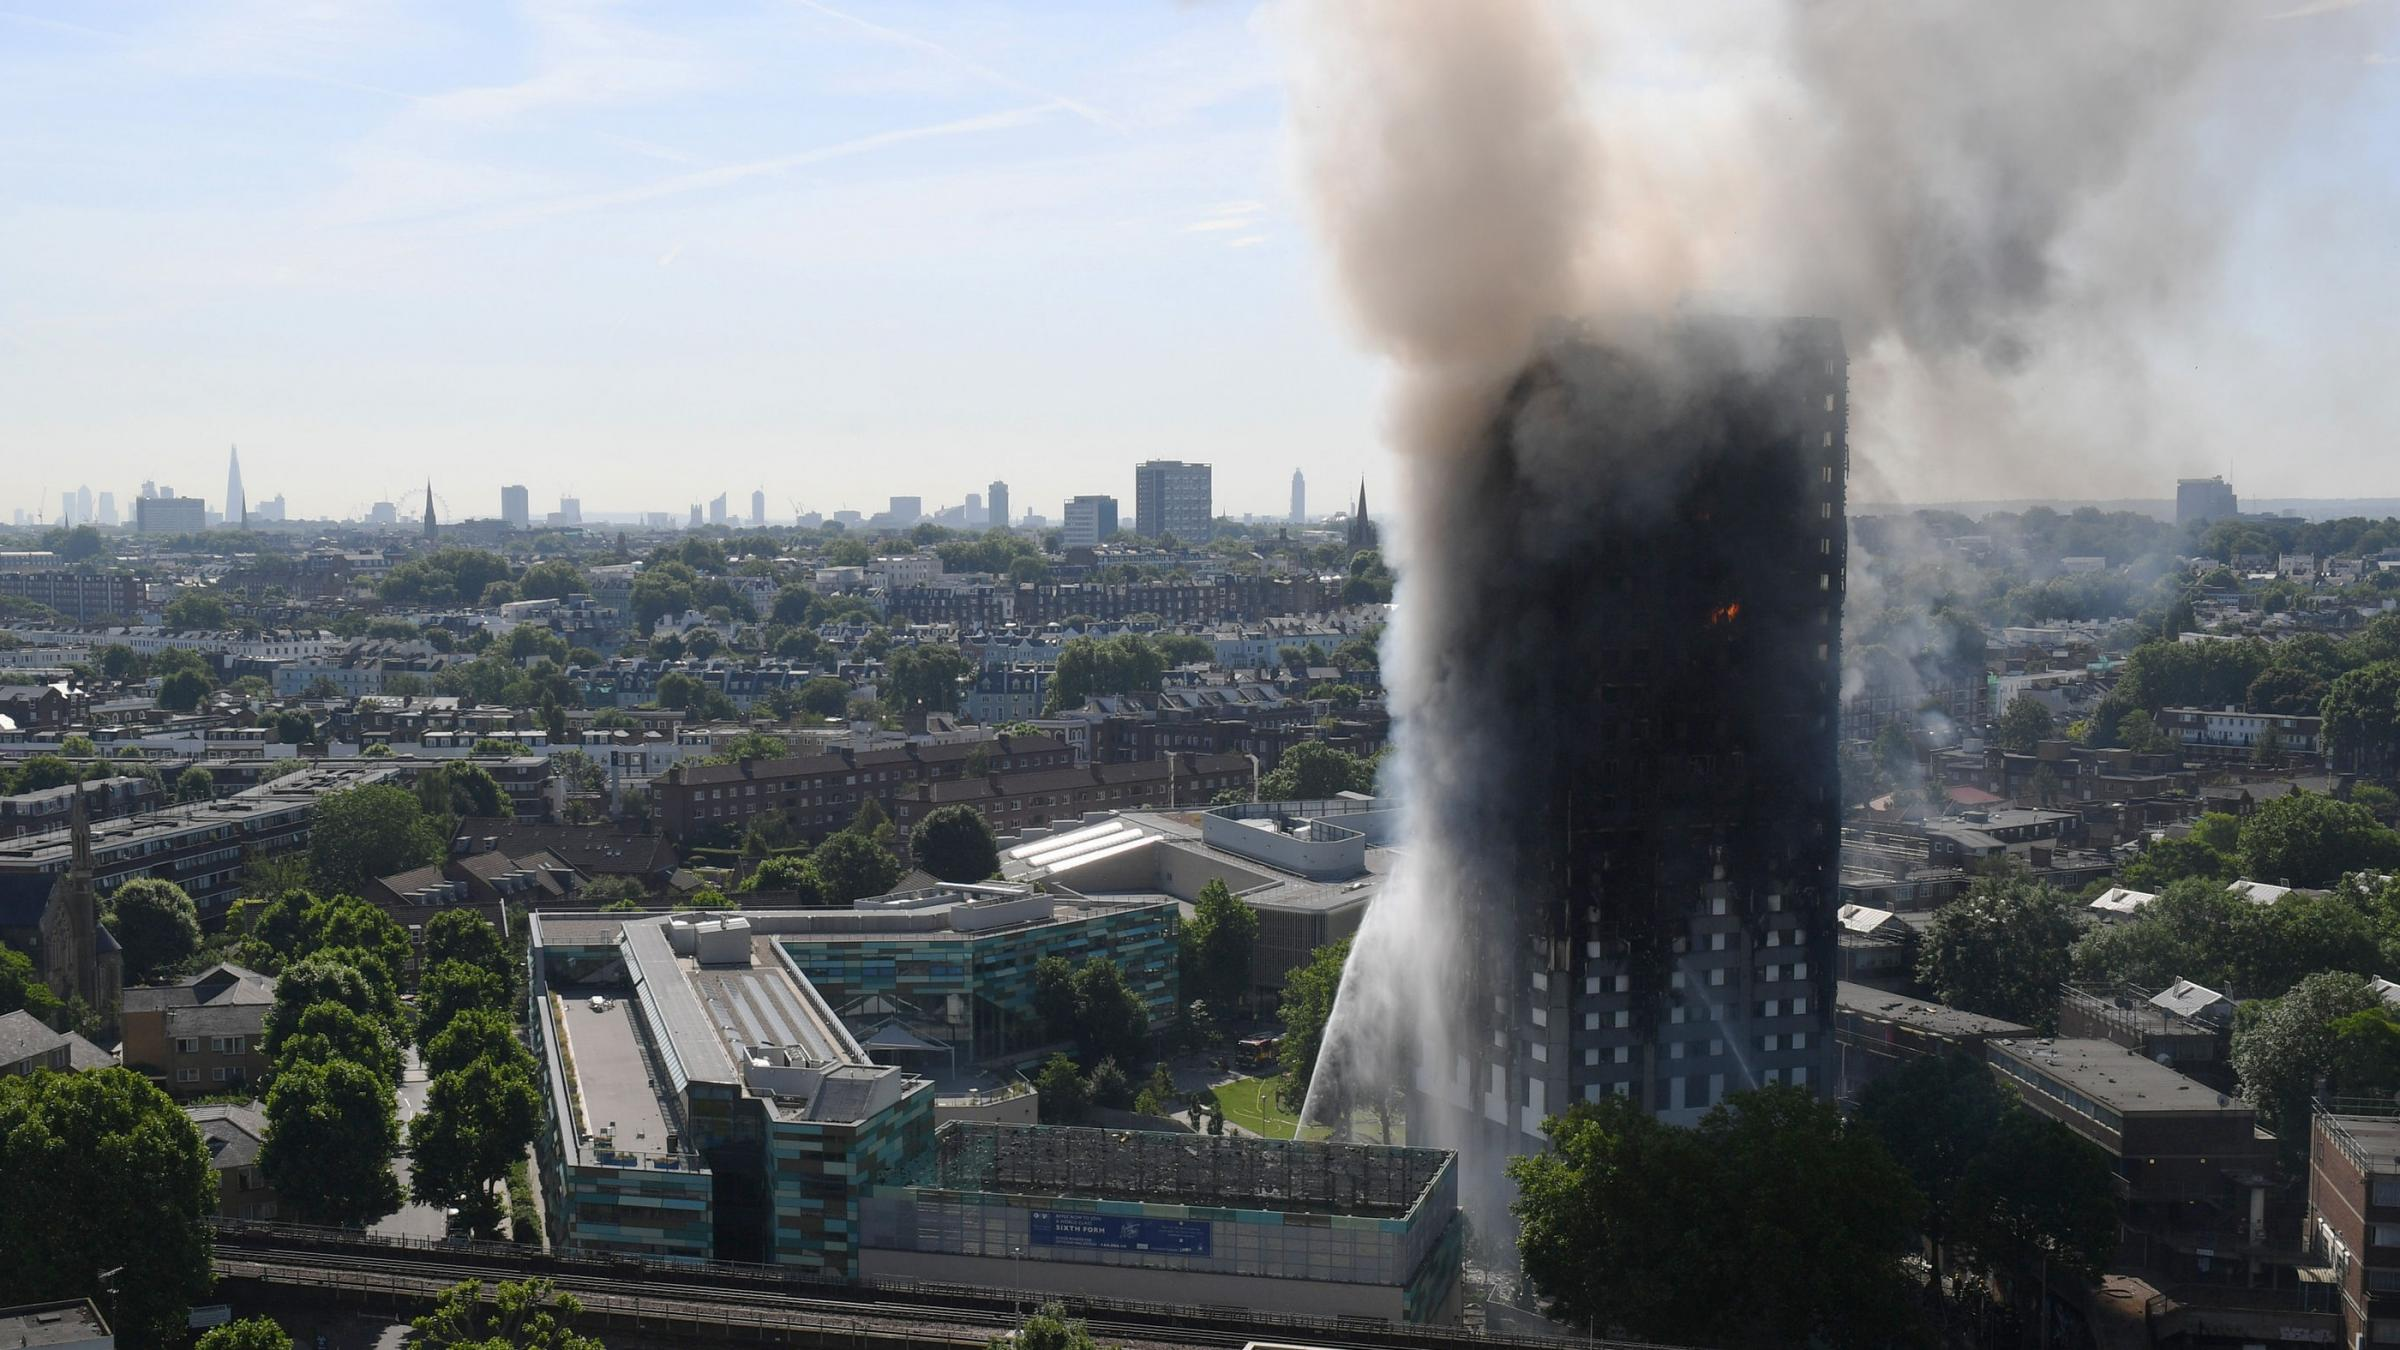 Grenfell Tower death toll: Number of people confirmed dead rises to 30